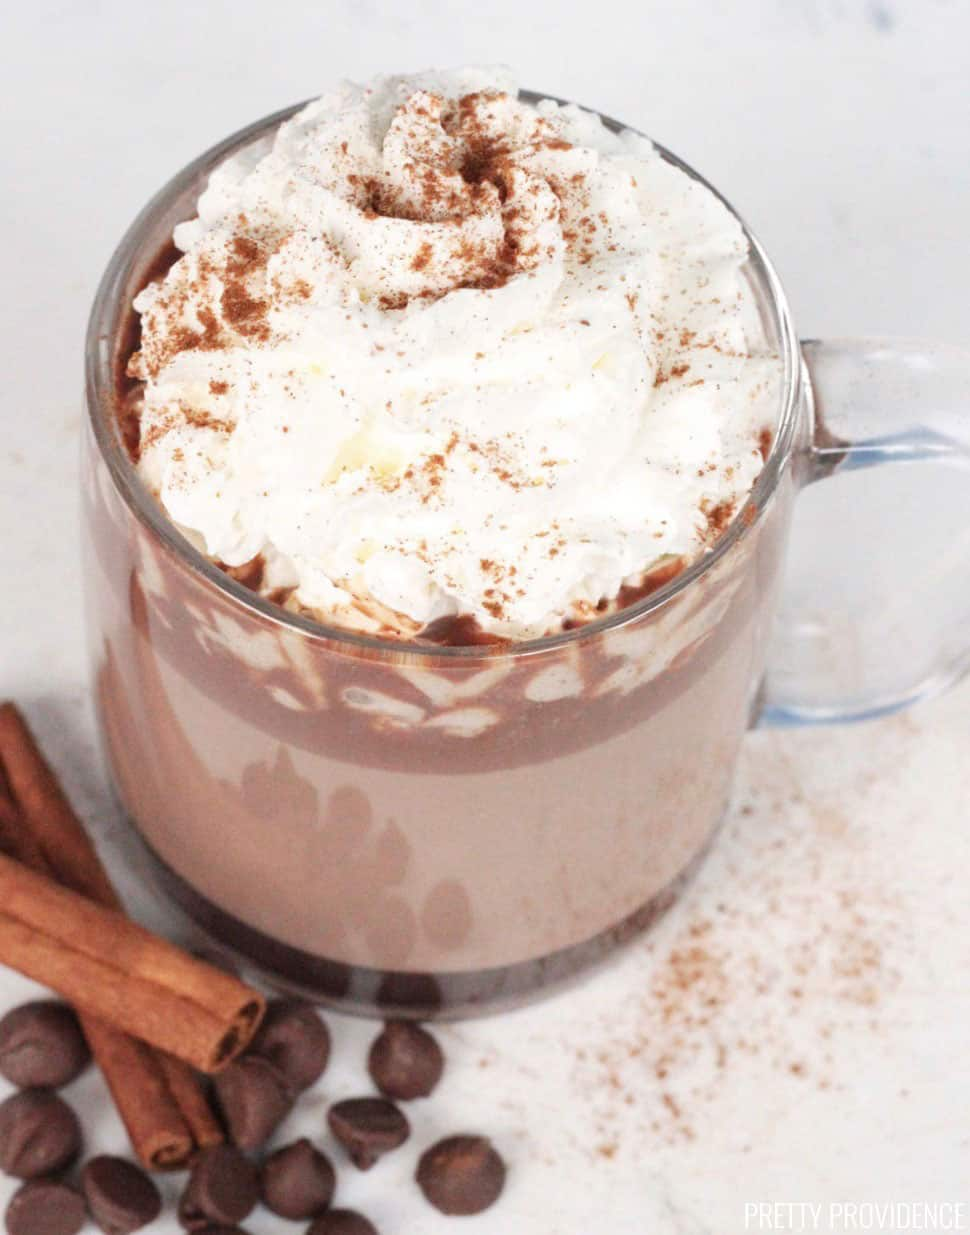 Pumpkin Spice Hot Chocolate with cinnamon sticks and chocolate chips and whipped cream on top with pumpkin pie spice dusted on top.